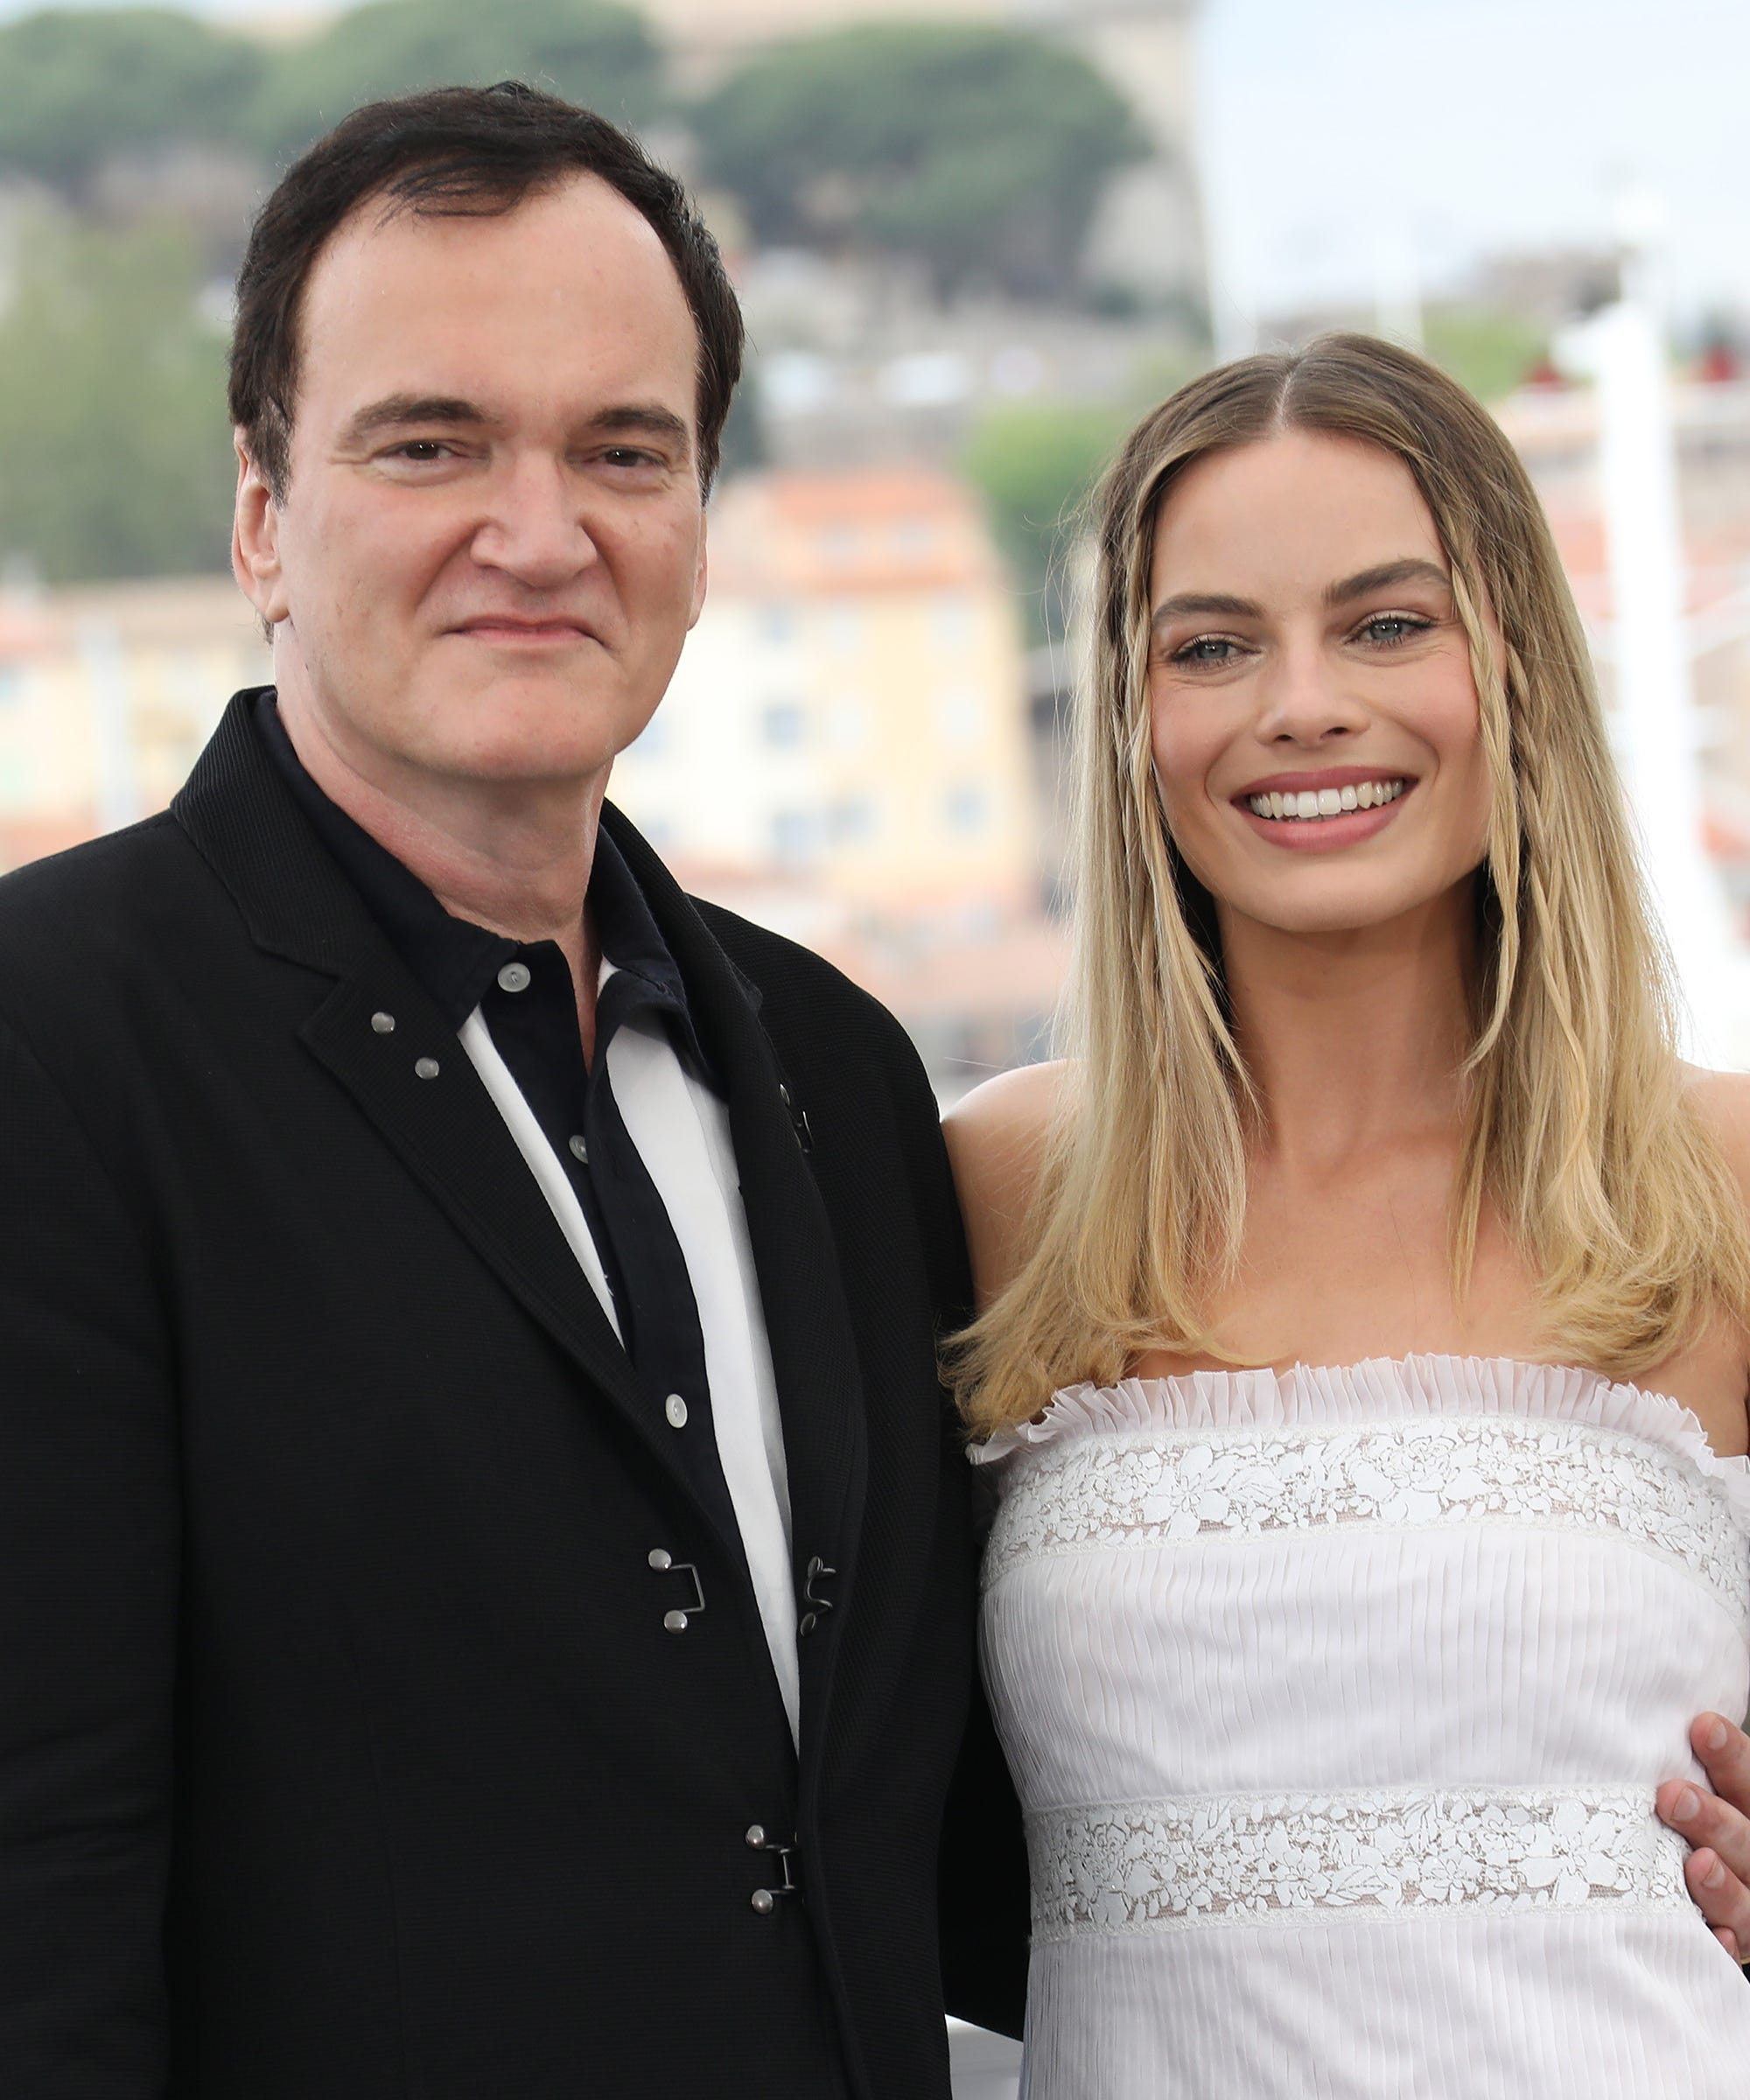 Things Got Awkward When Quentin Tarantino Was Asked Why He Gave Margot Robbie So Few Lines In New Movie